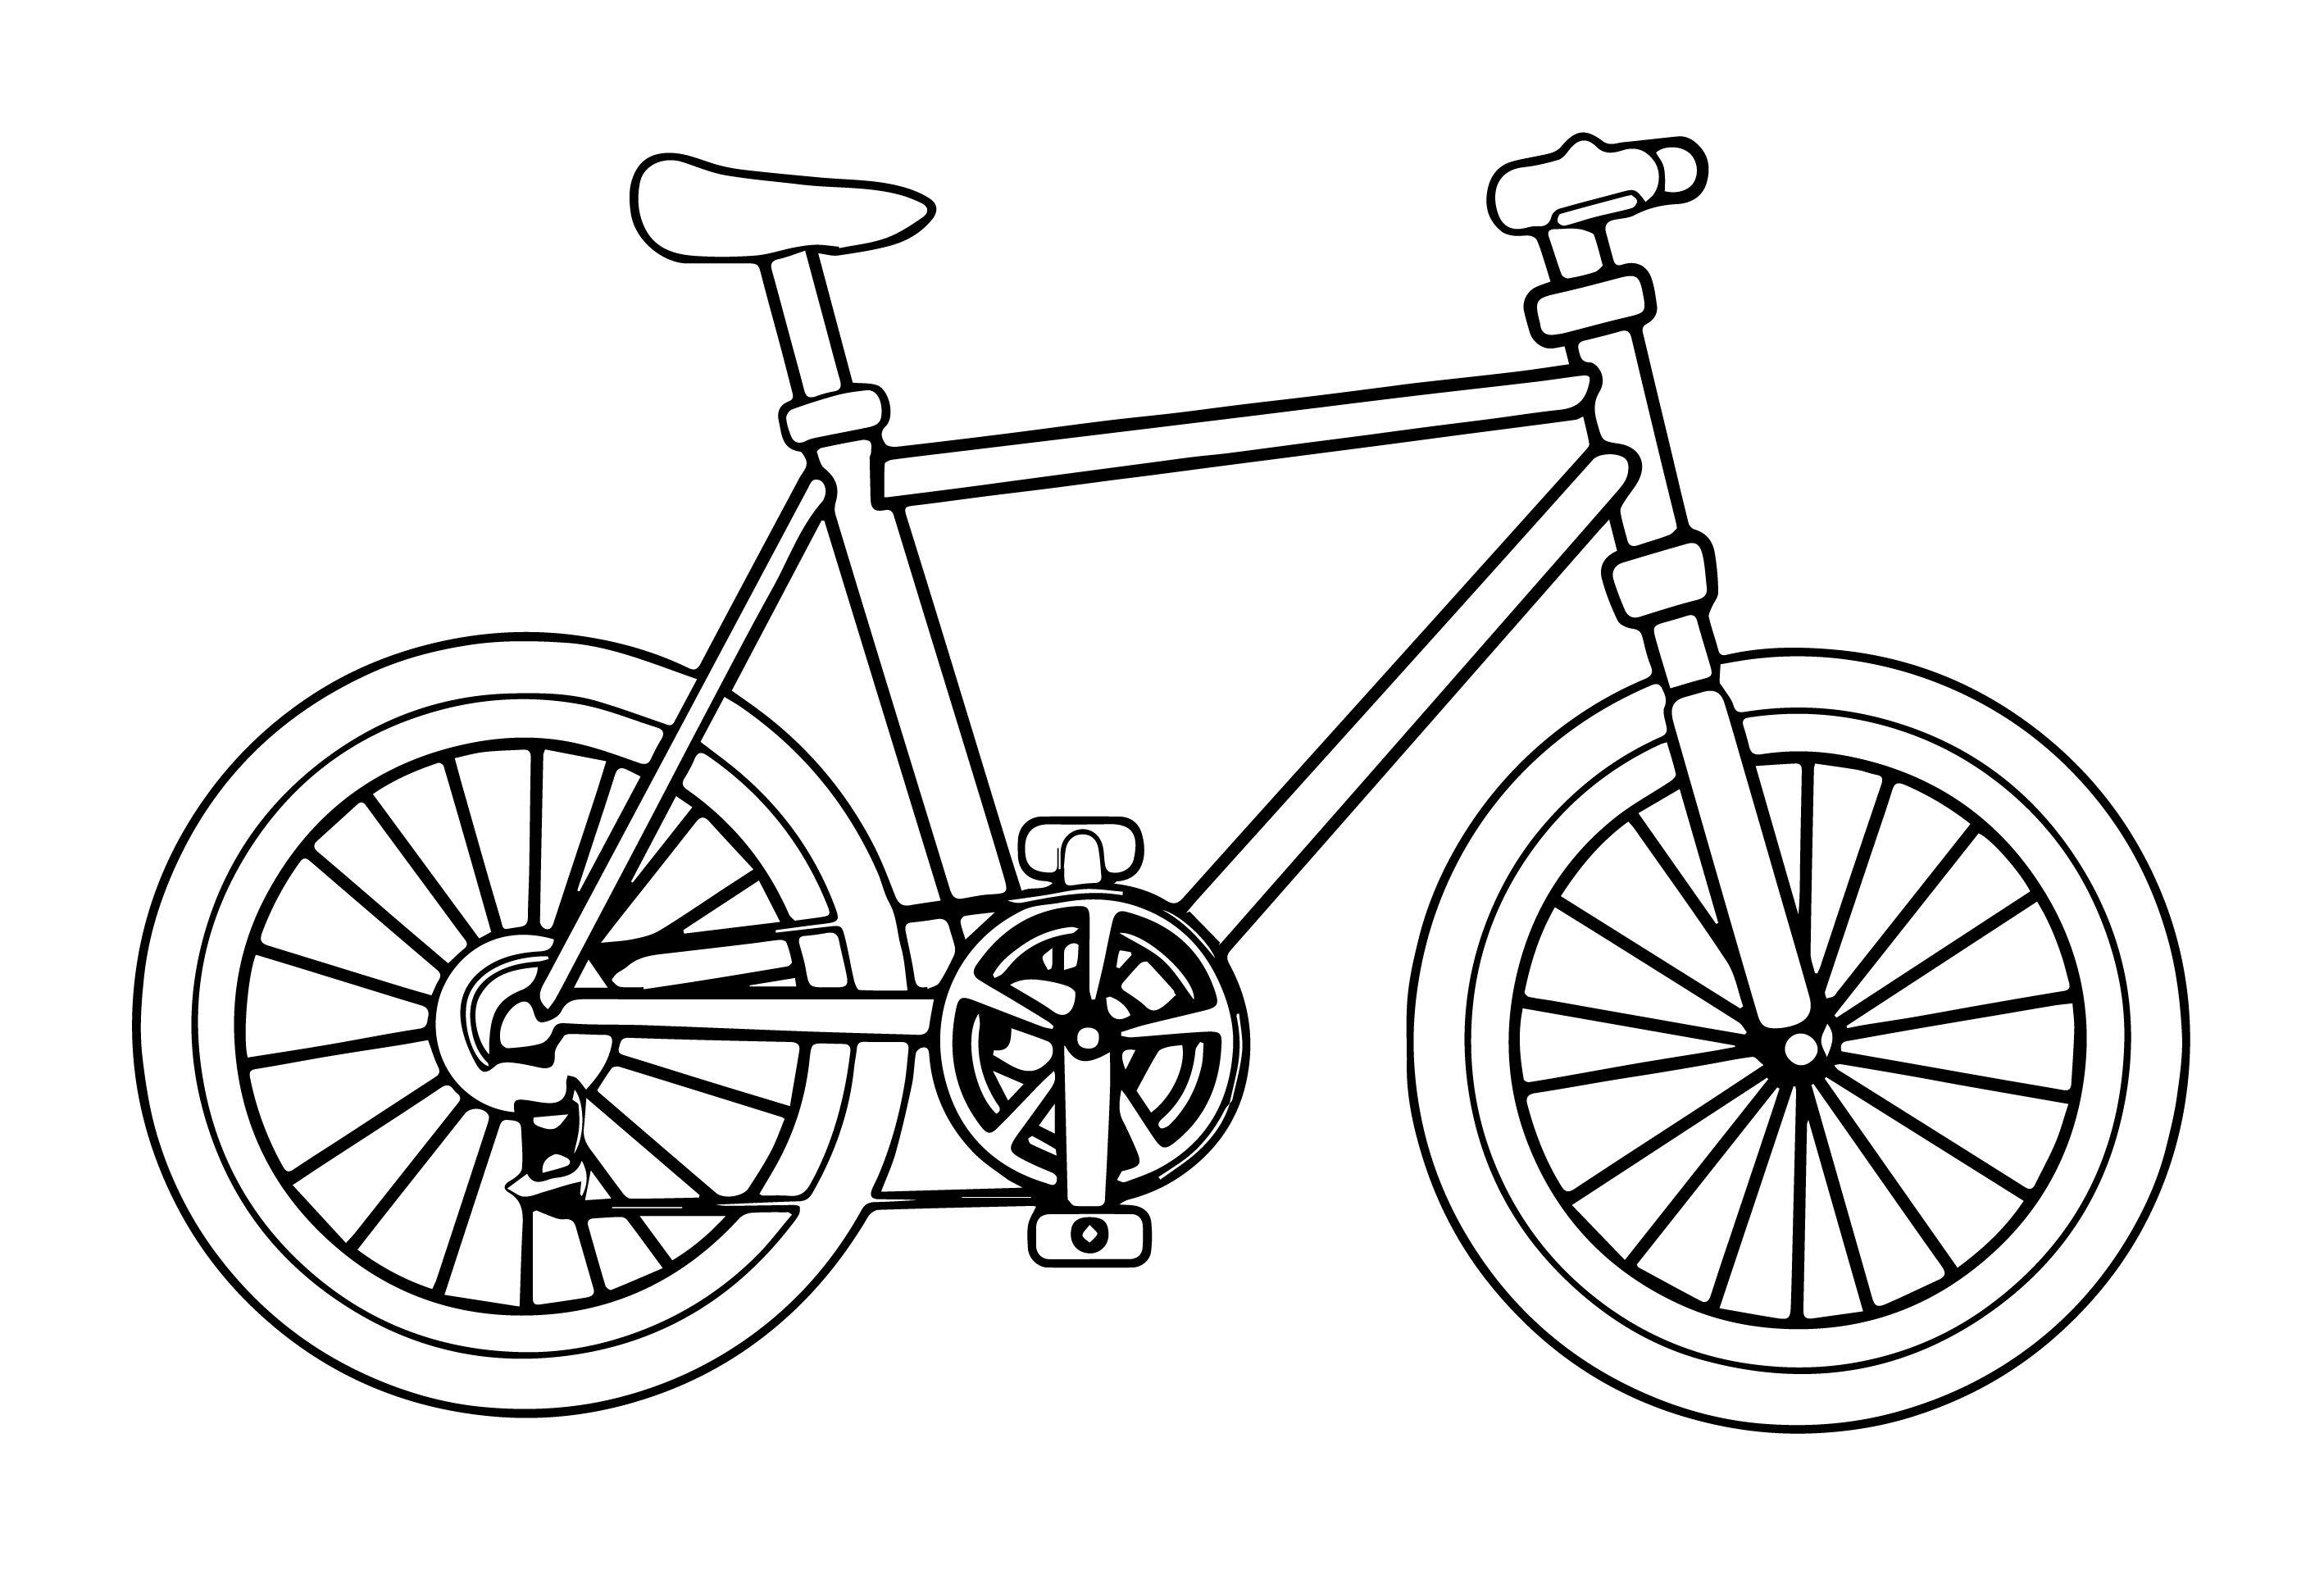 bicycle coloring pages bicycle coloring pages by daniel – Free Printables bicycle coloring pages